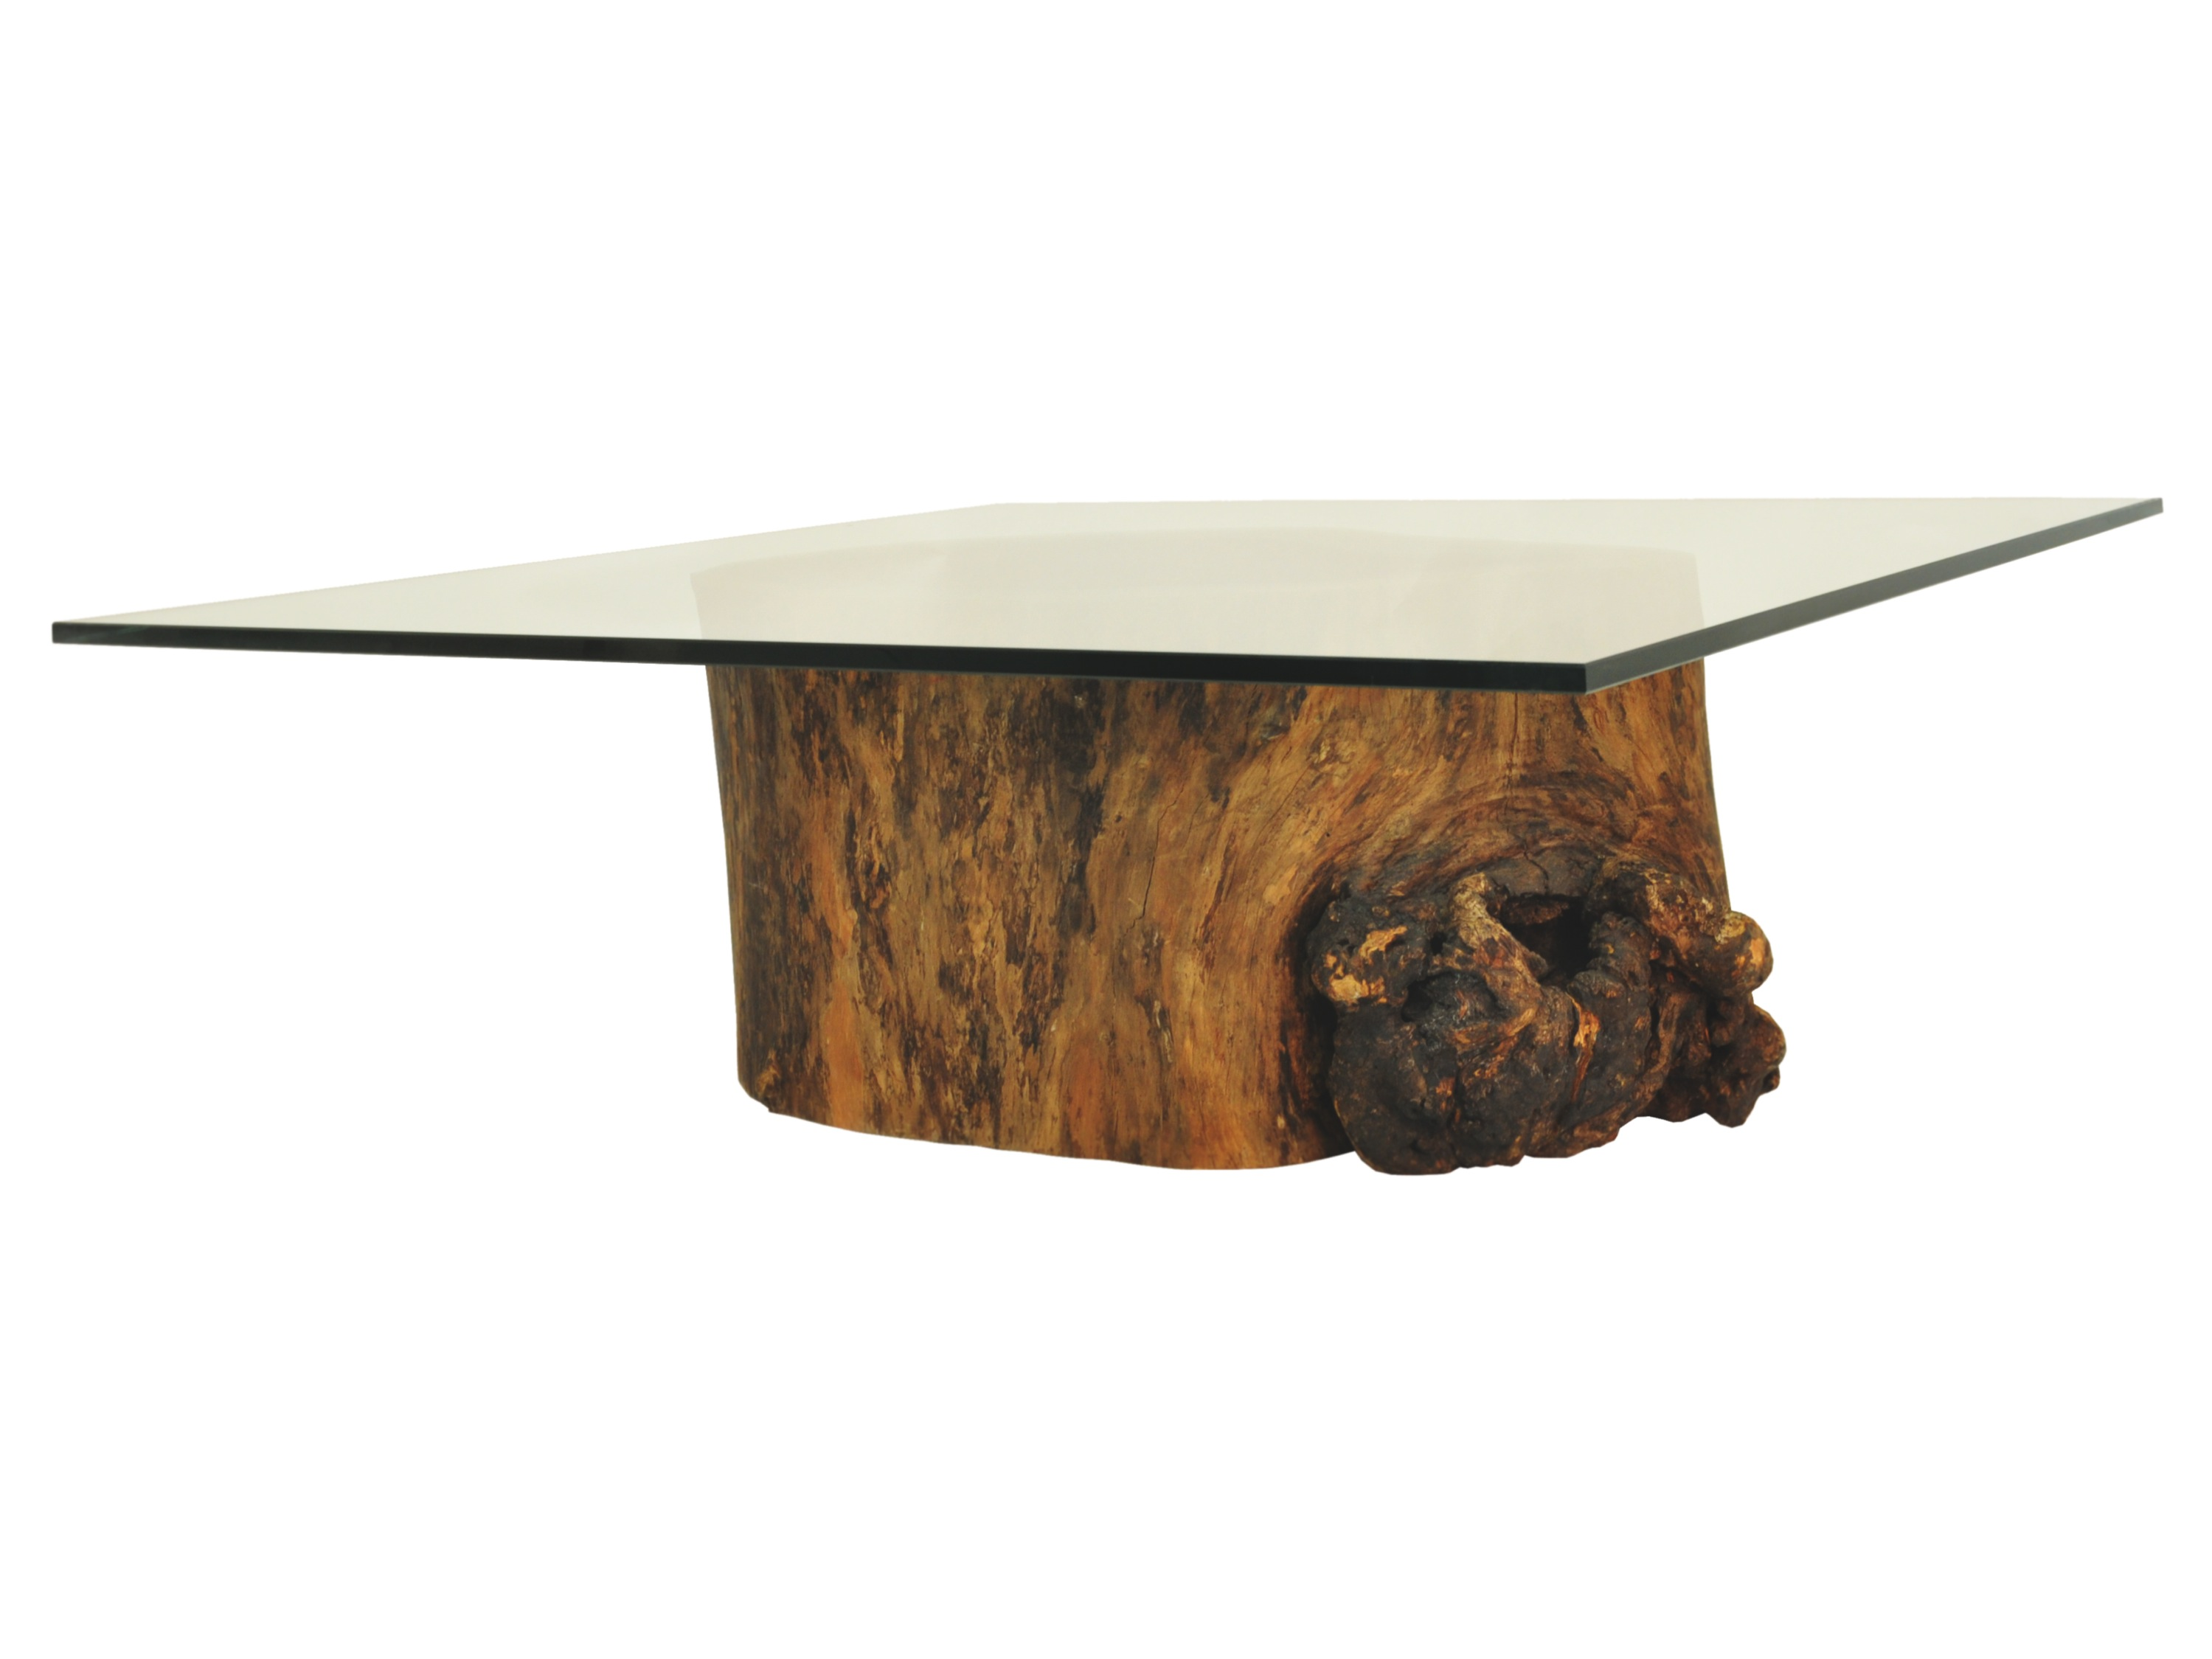 Glass Coffee Tables On Sale Too Much Brown Furniture A National Epidemic Handmade Contemporary Furniture (View 7 of 10)